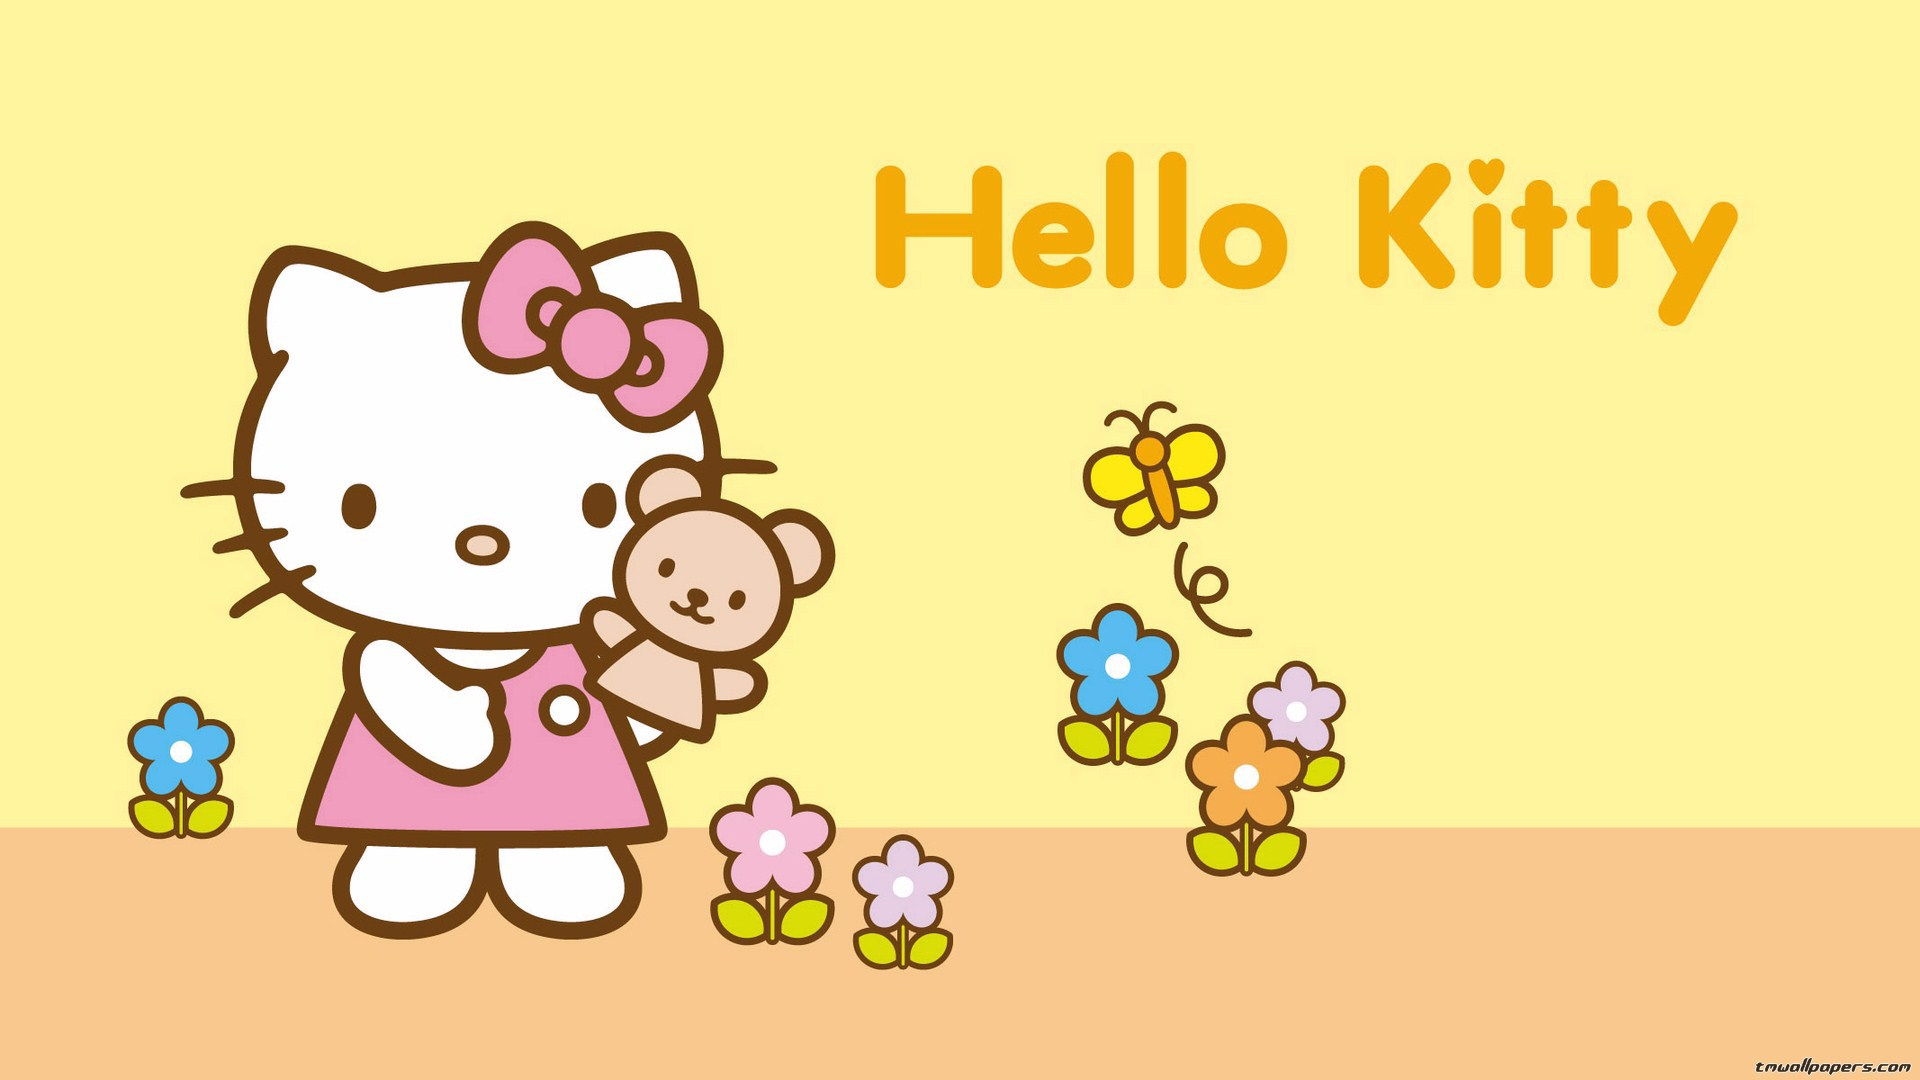 Hello Kitty Images